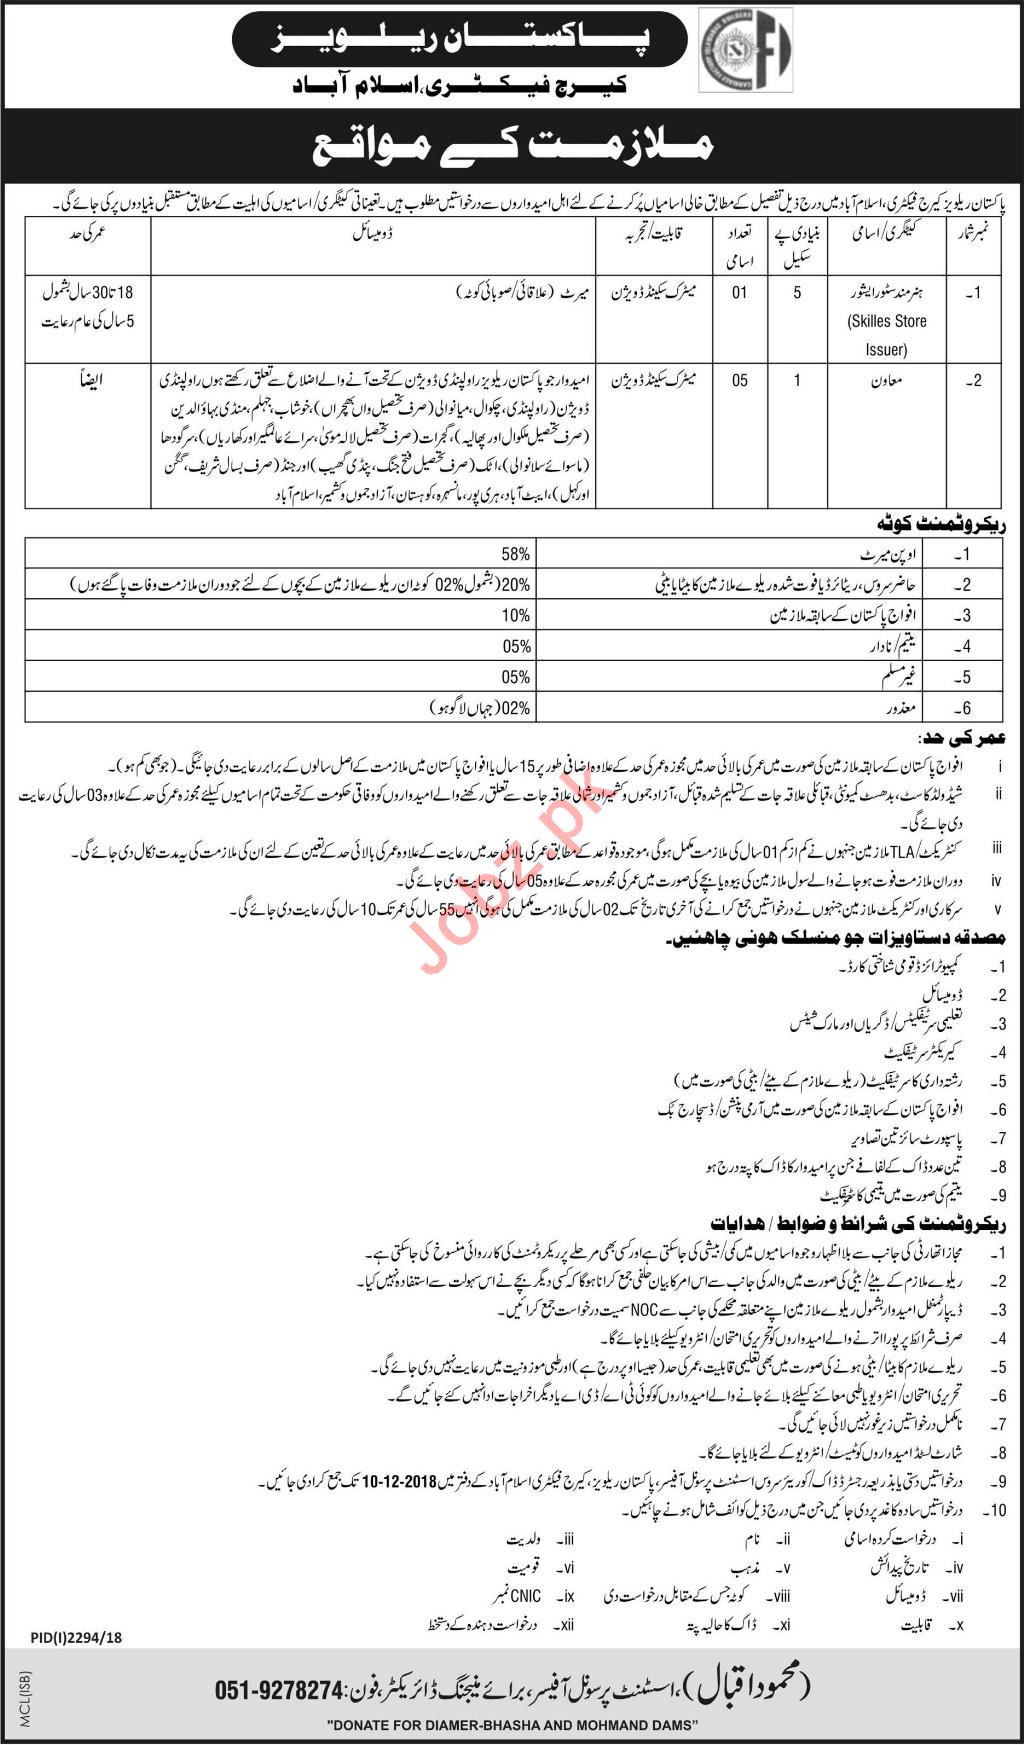 Pakistan Railways Carriage Factory Skilled Store Issuer Jobs